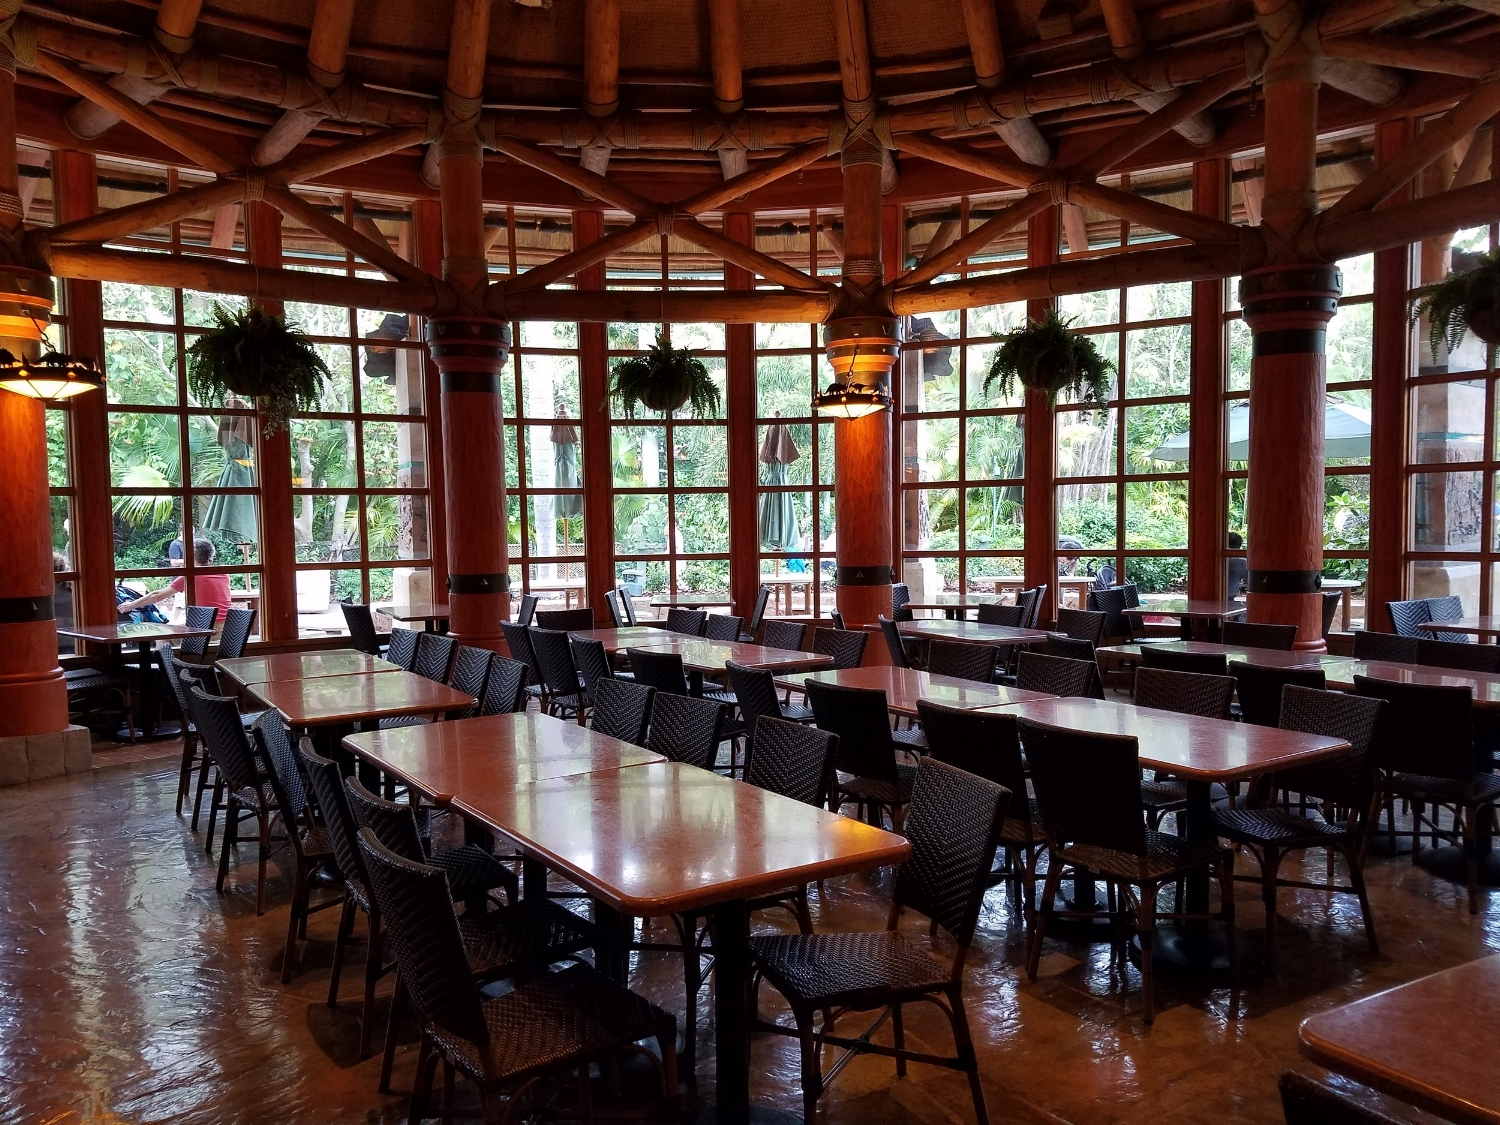 Indoor seating at Thunder Falls Terrace in Jurassic Park.